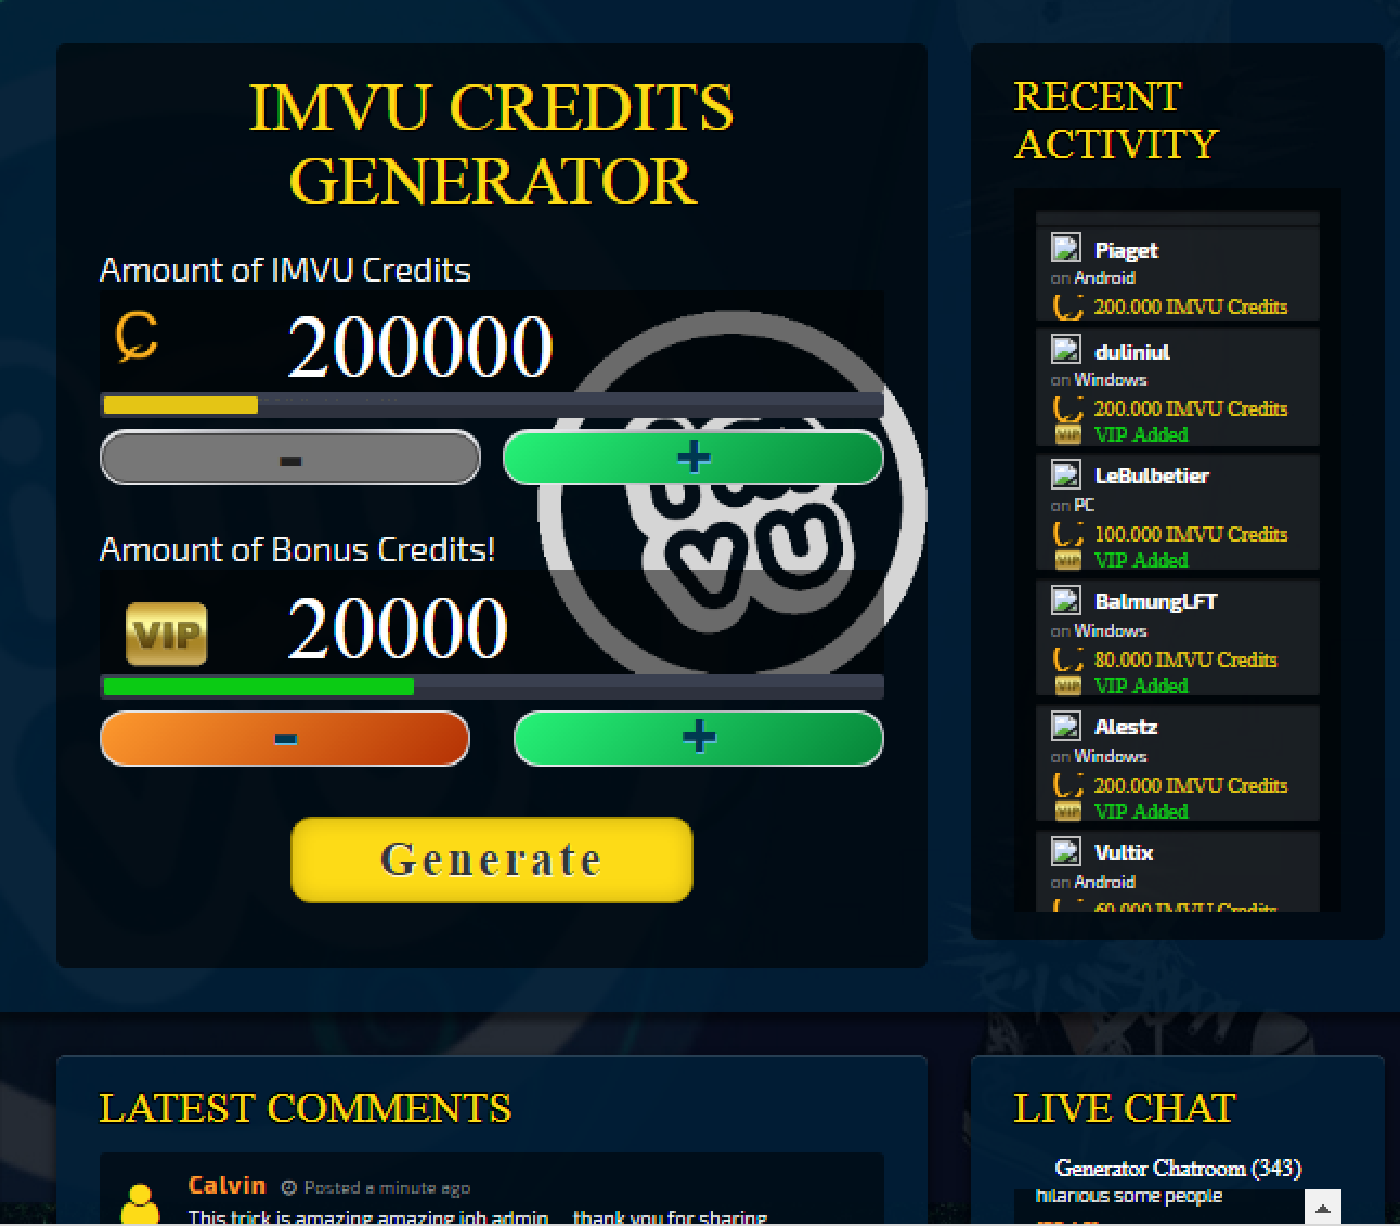 How To Get Free Vip And Ap On Imvu